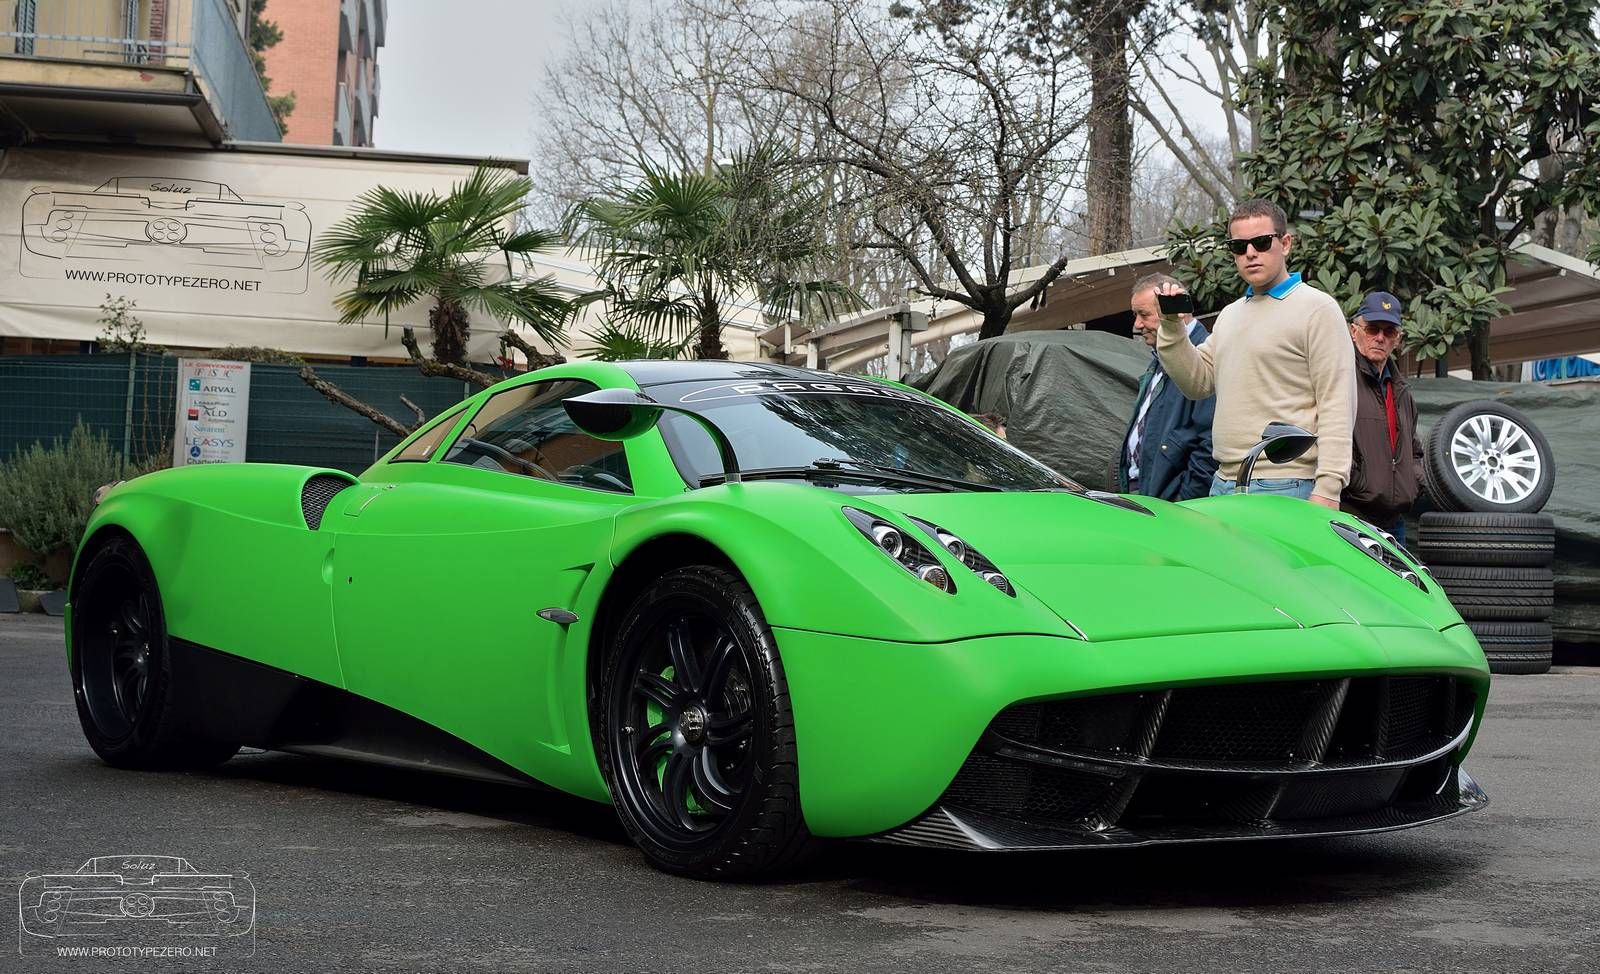 Lime Green Pagani Huayra Spotted in Modena - GTspirit